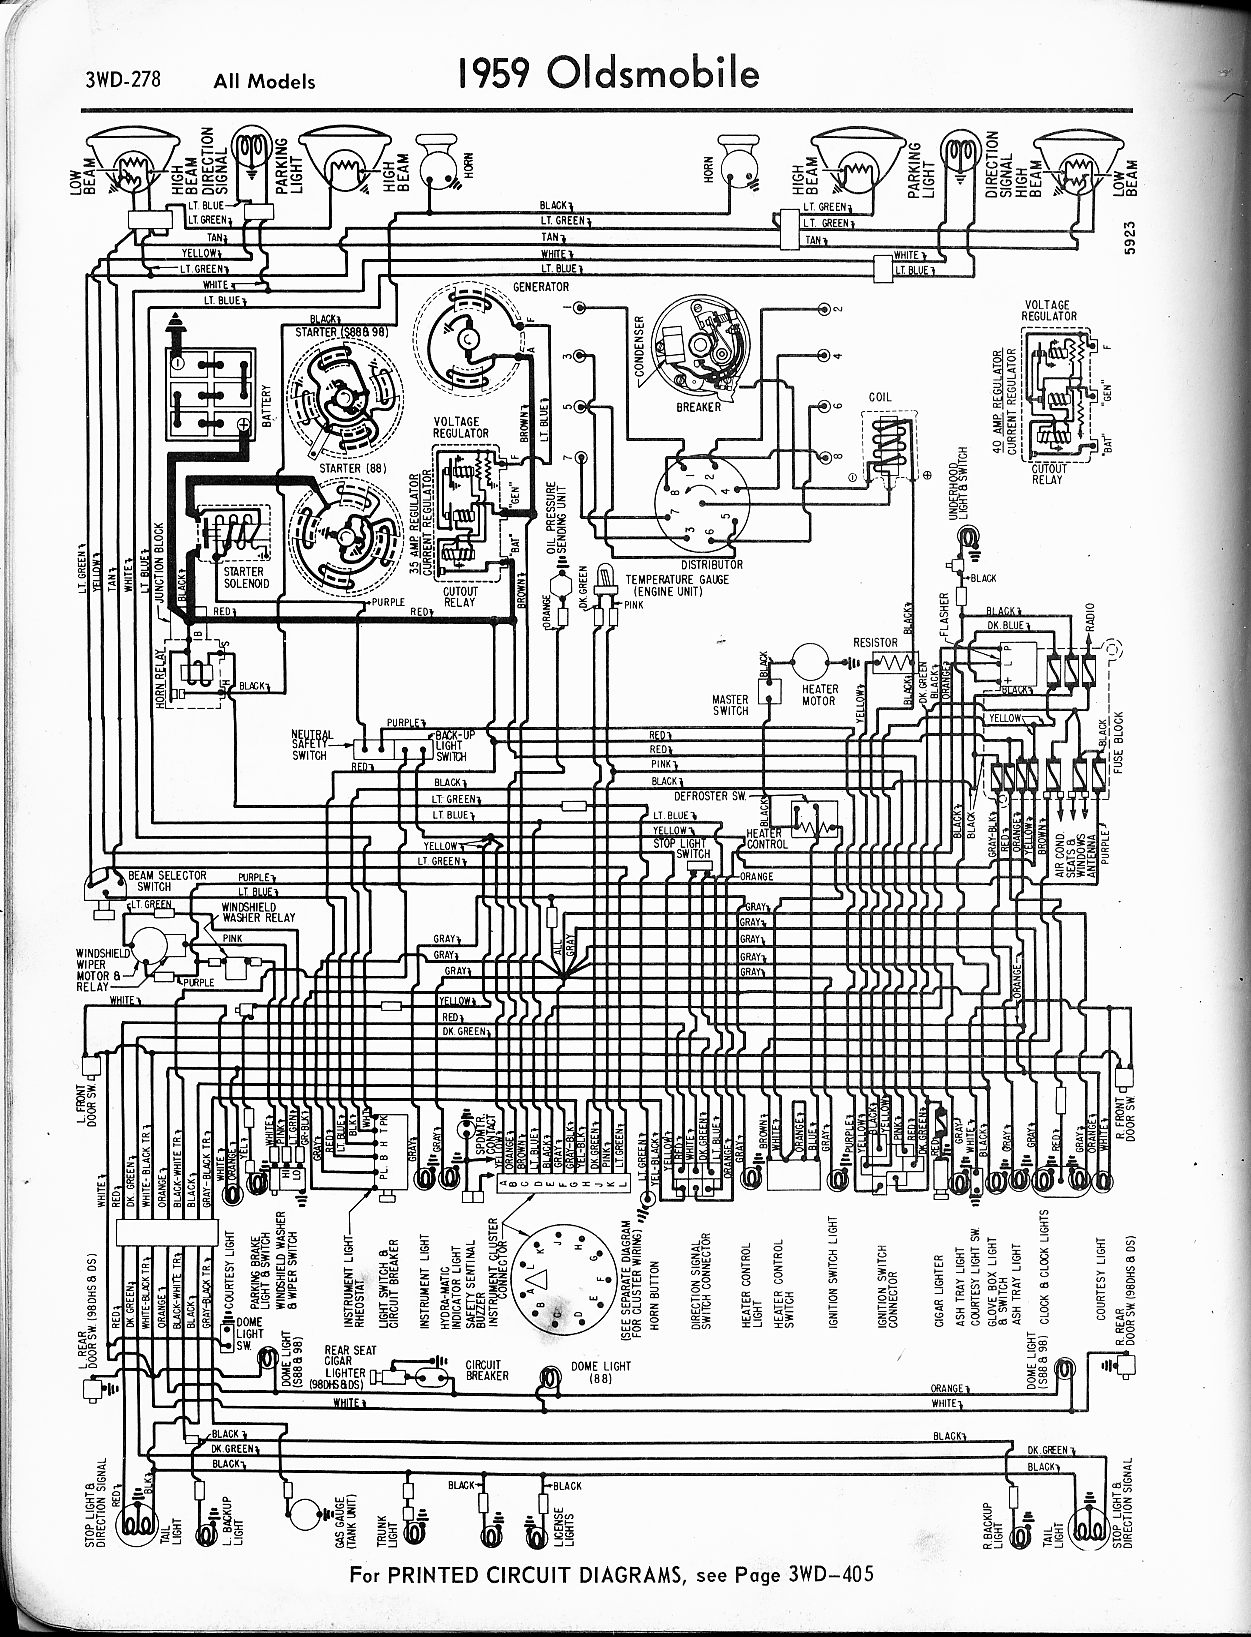 MWire5765 278 oldsmobile wiring diagrams the old car manual project regency ceiling fan wiring diagram at bakdesigns.co